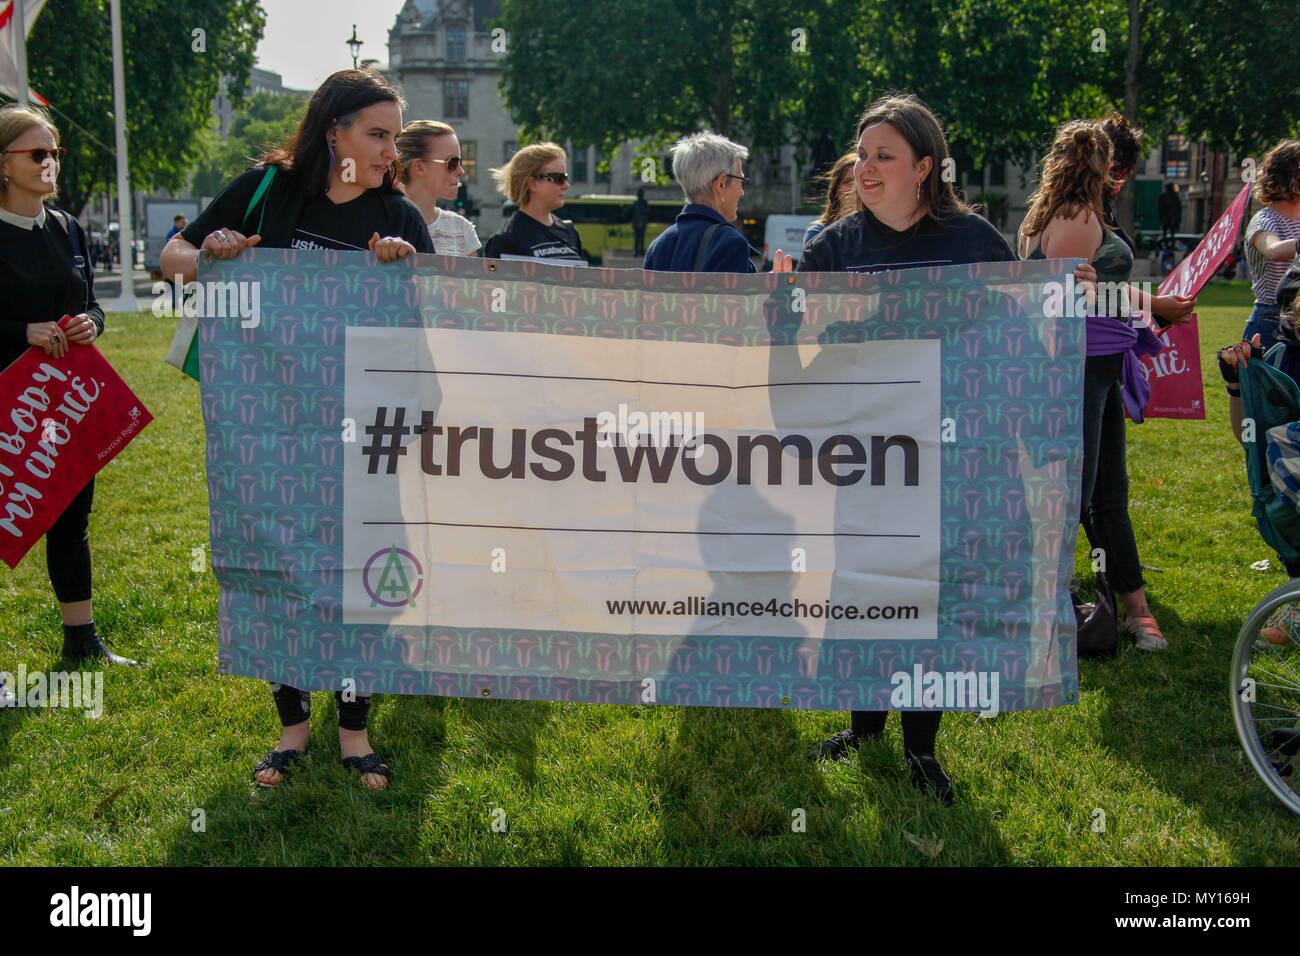 London, UK. 5th June, 2018. Banner at Pro-Abortion Protest Credit: Alex Cavendish/Alamy Live News Stock Photo